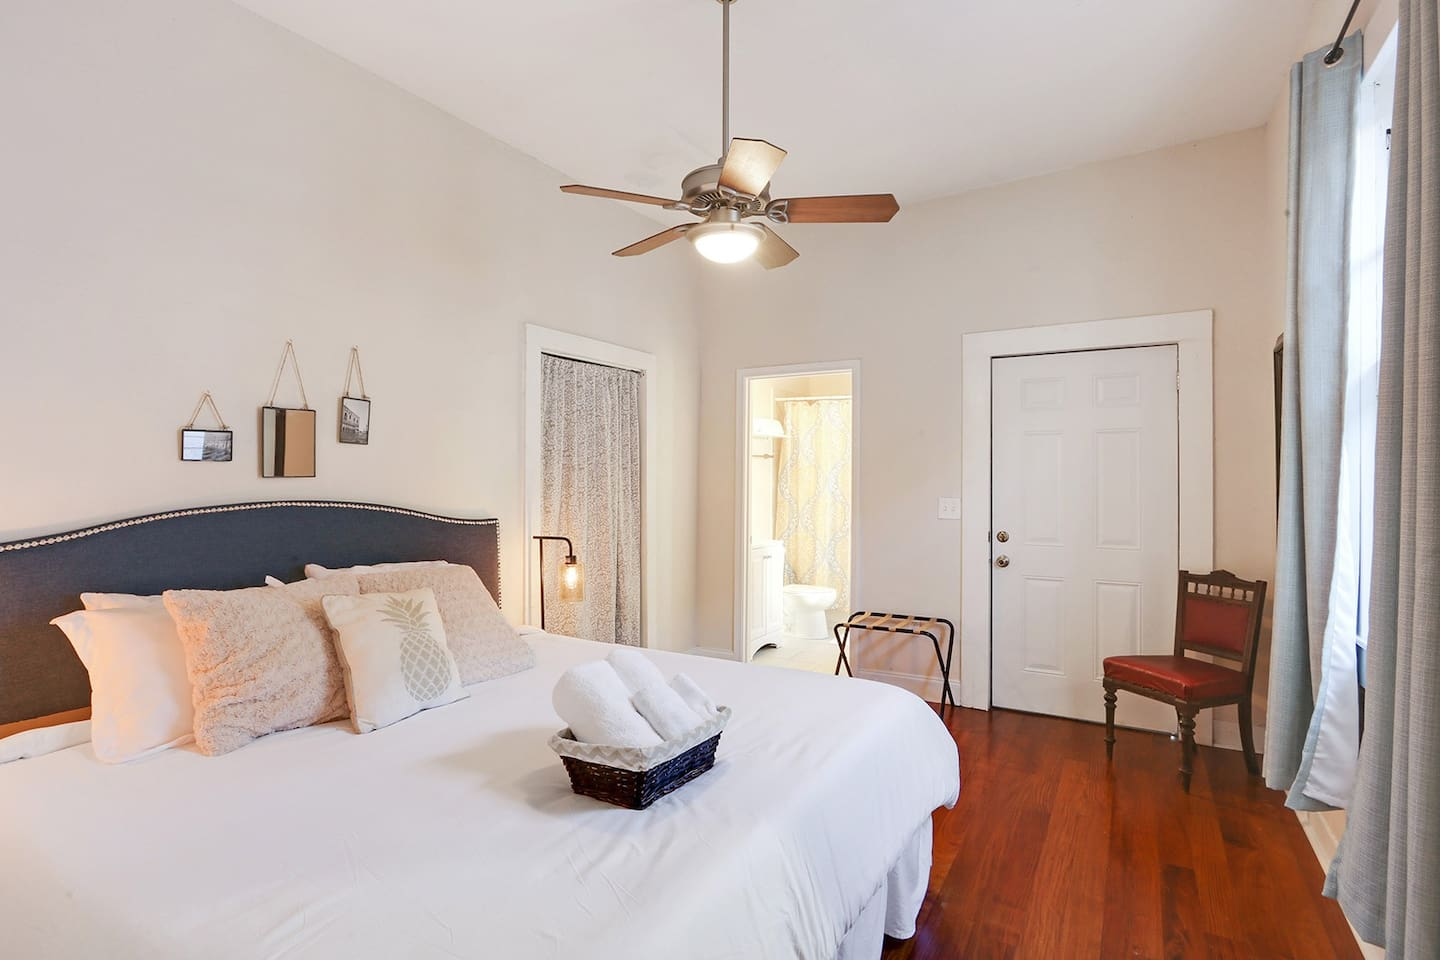 Bright By The Bayou Houses For Rent In New Orleans Louisiana  # Meuble Armoire Et Bahiou En Bois